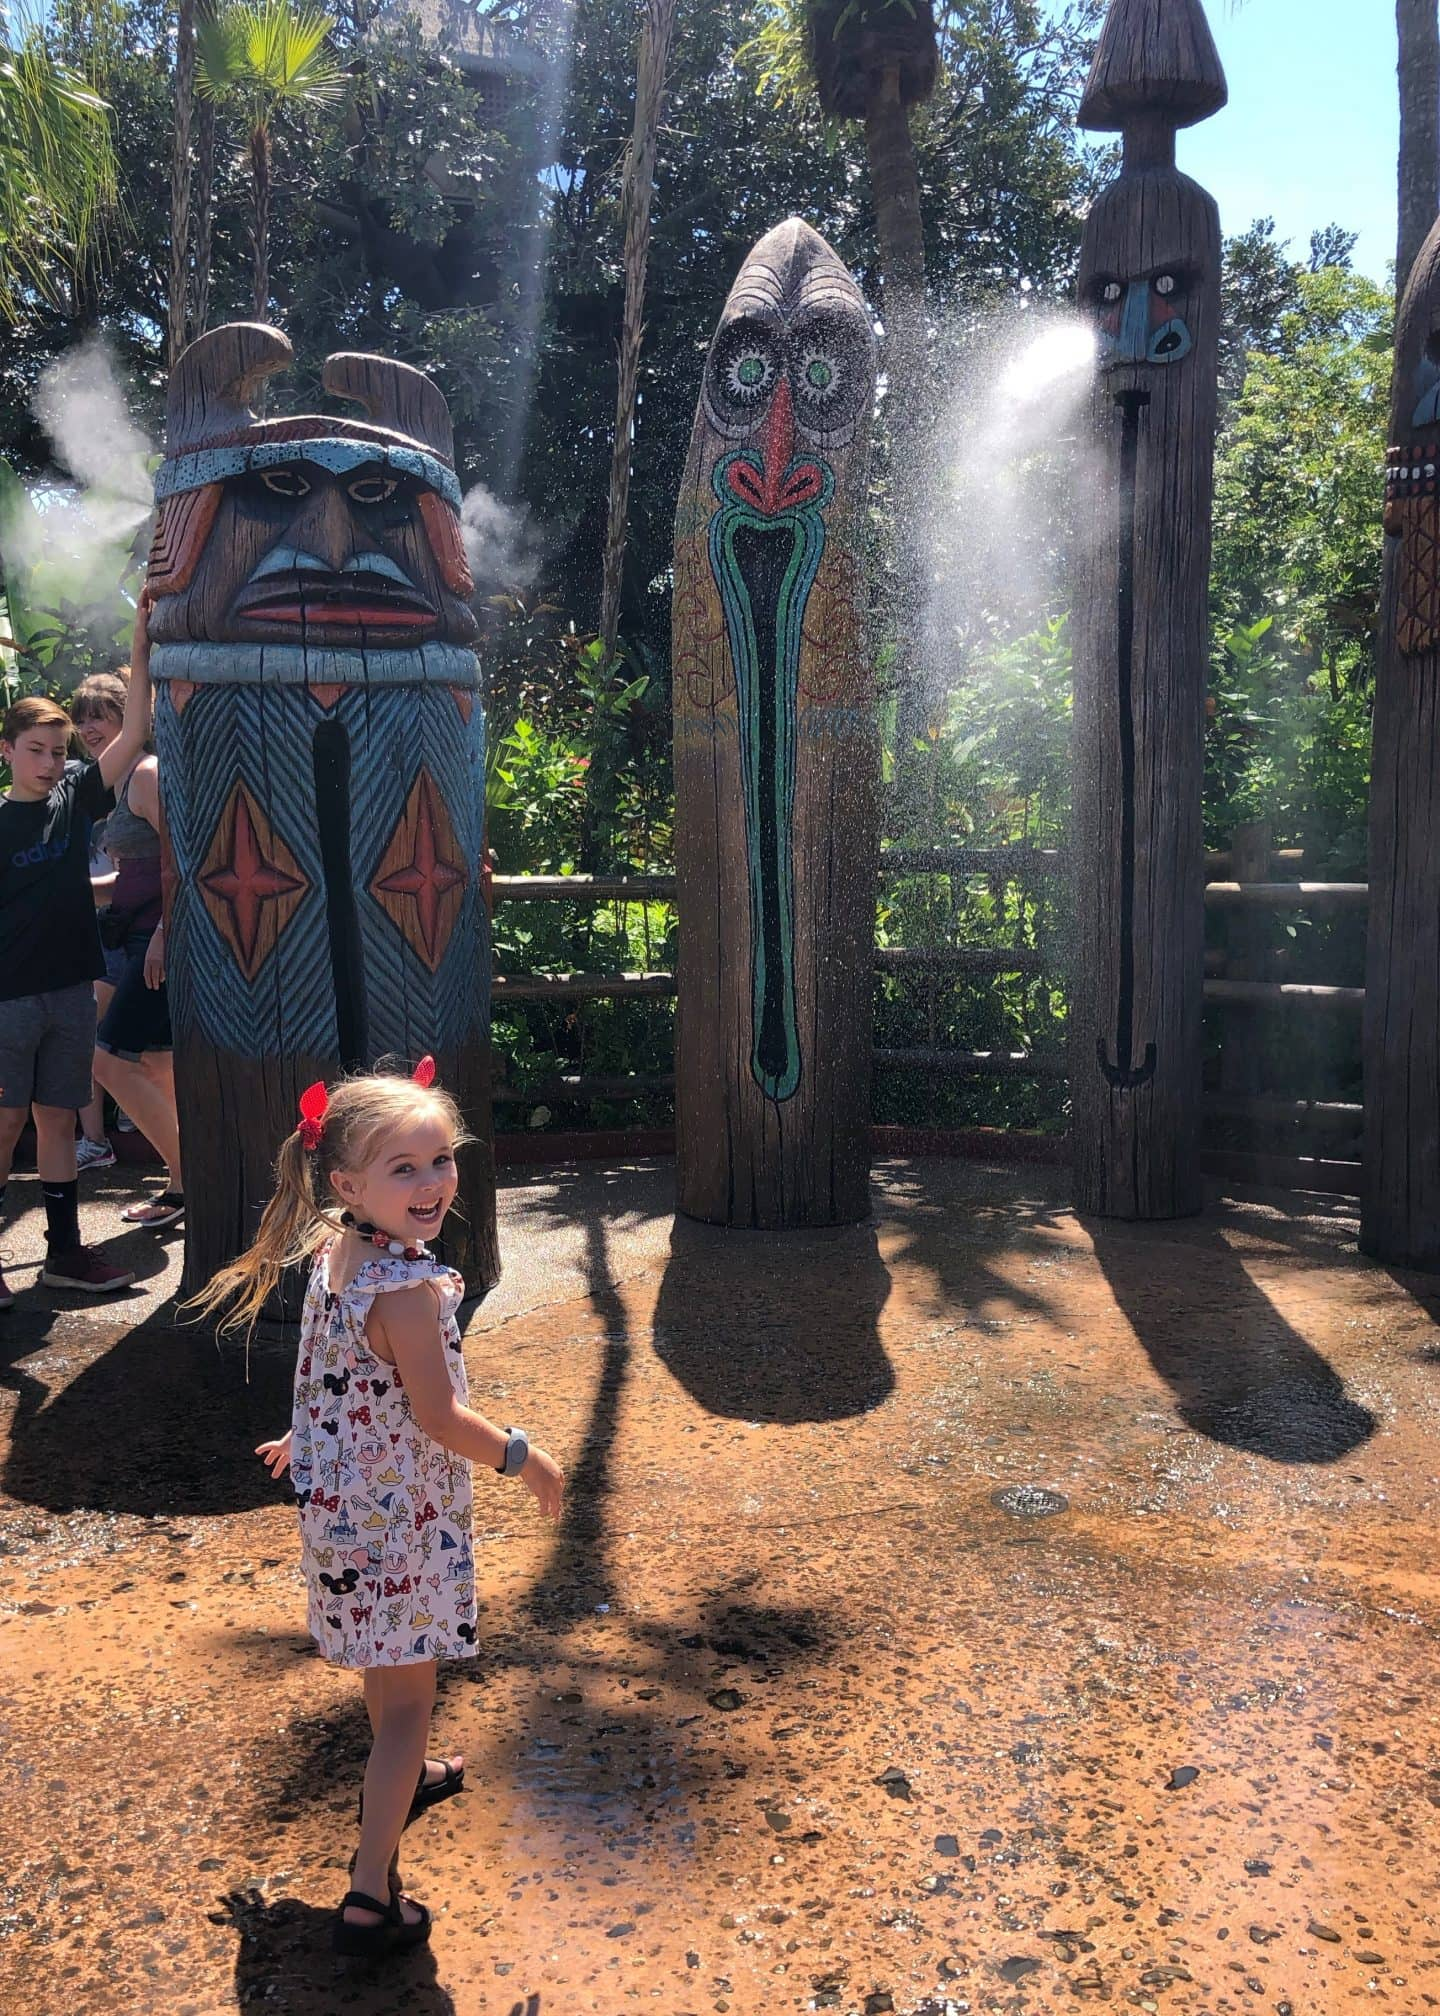 playing in water in Adventureland at magic kingdom